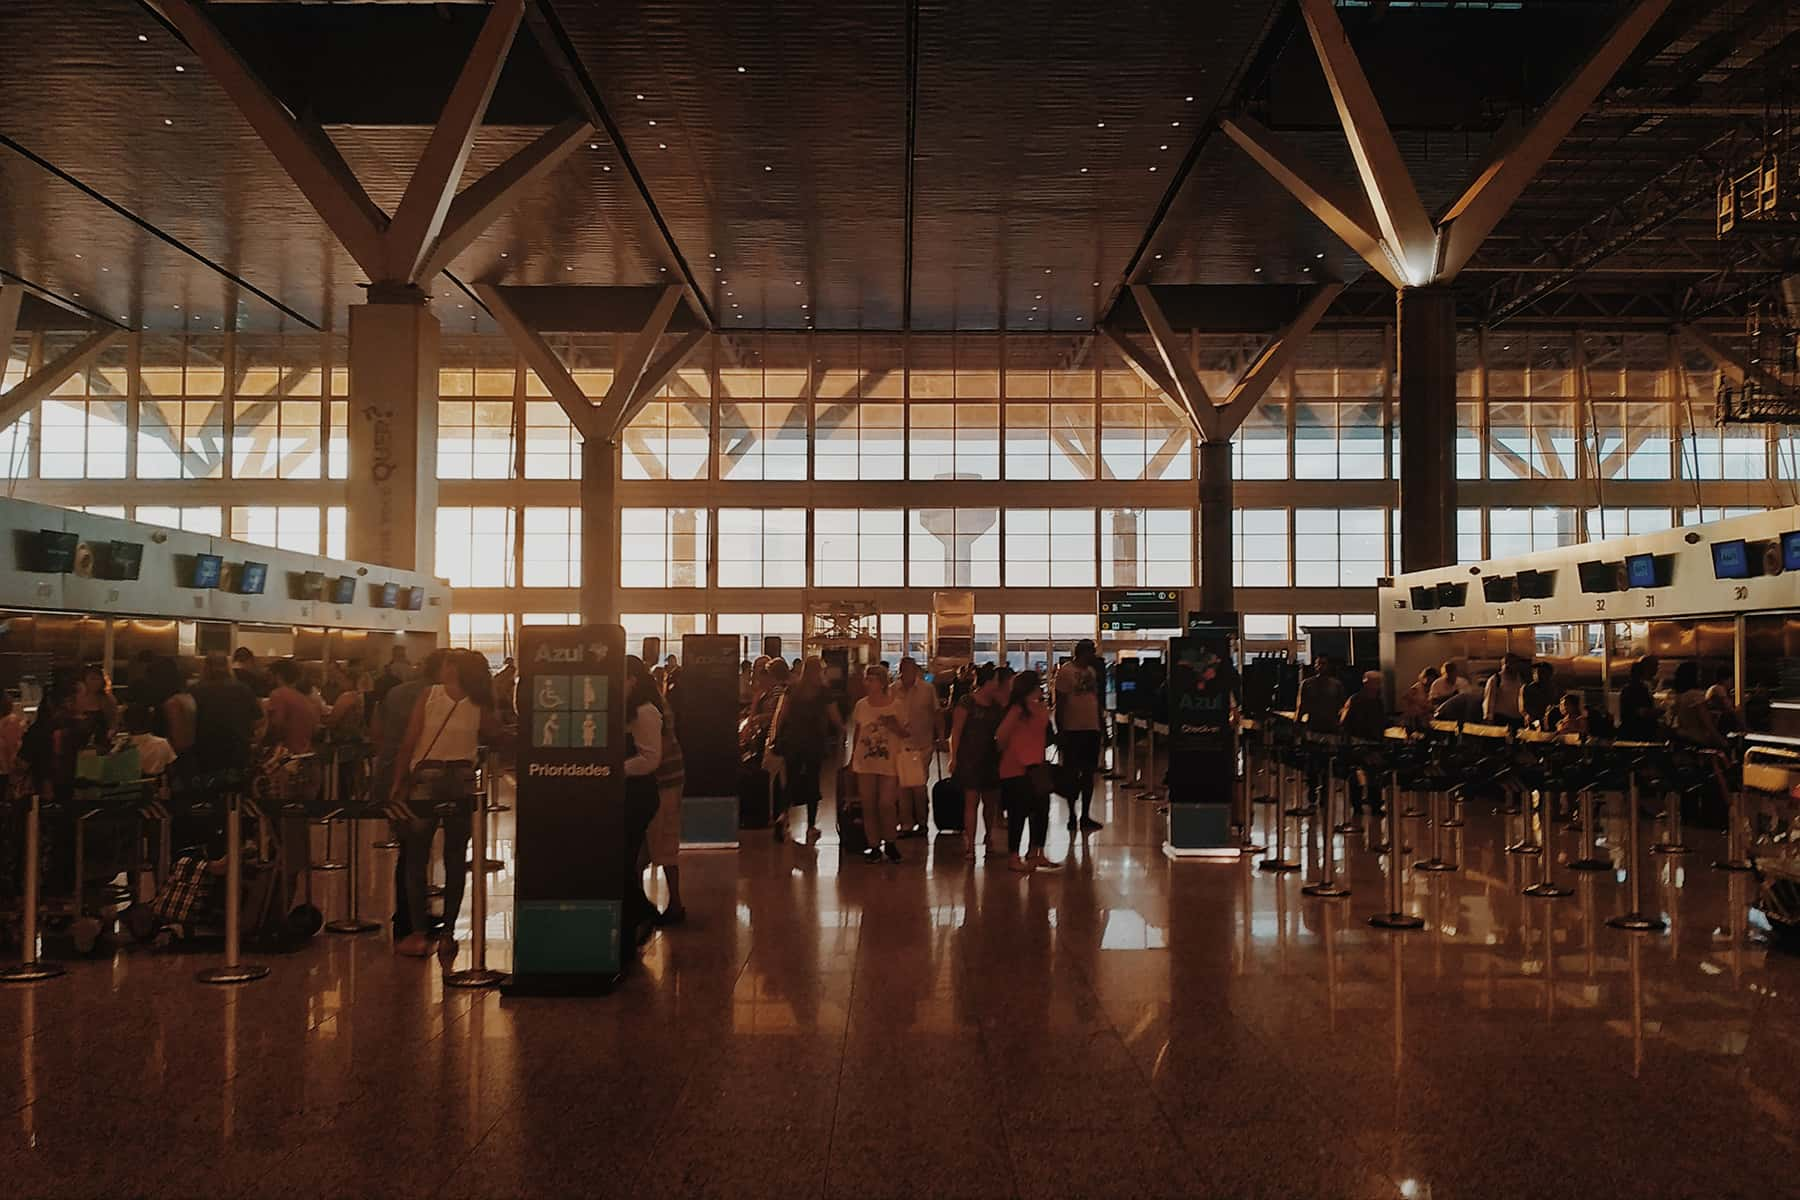 090521_AirportCrowd_02